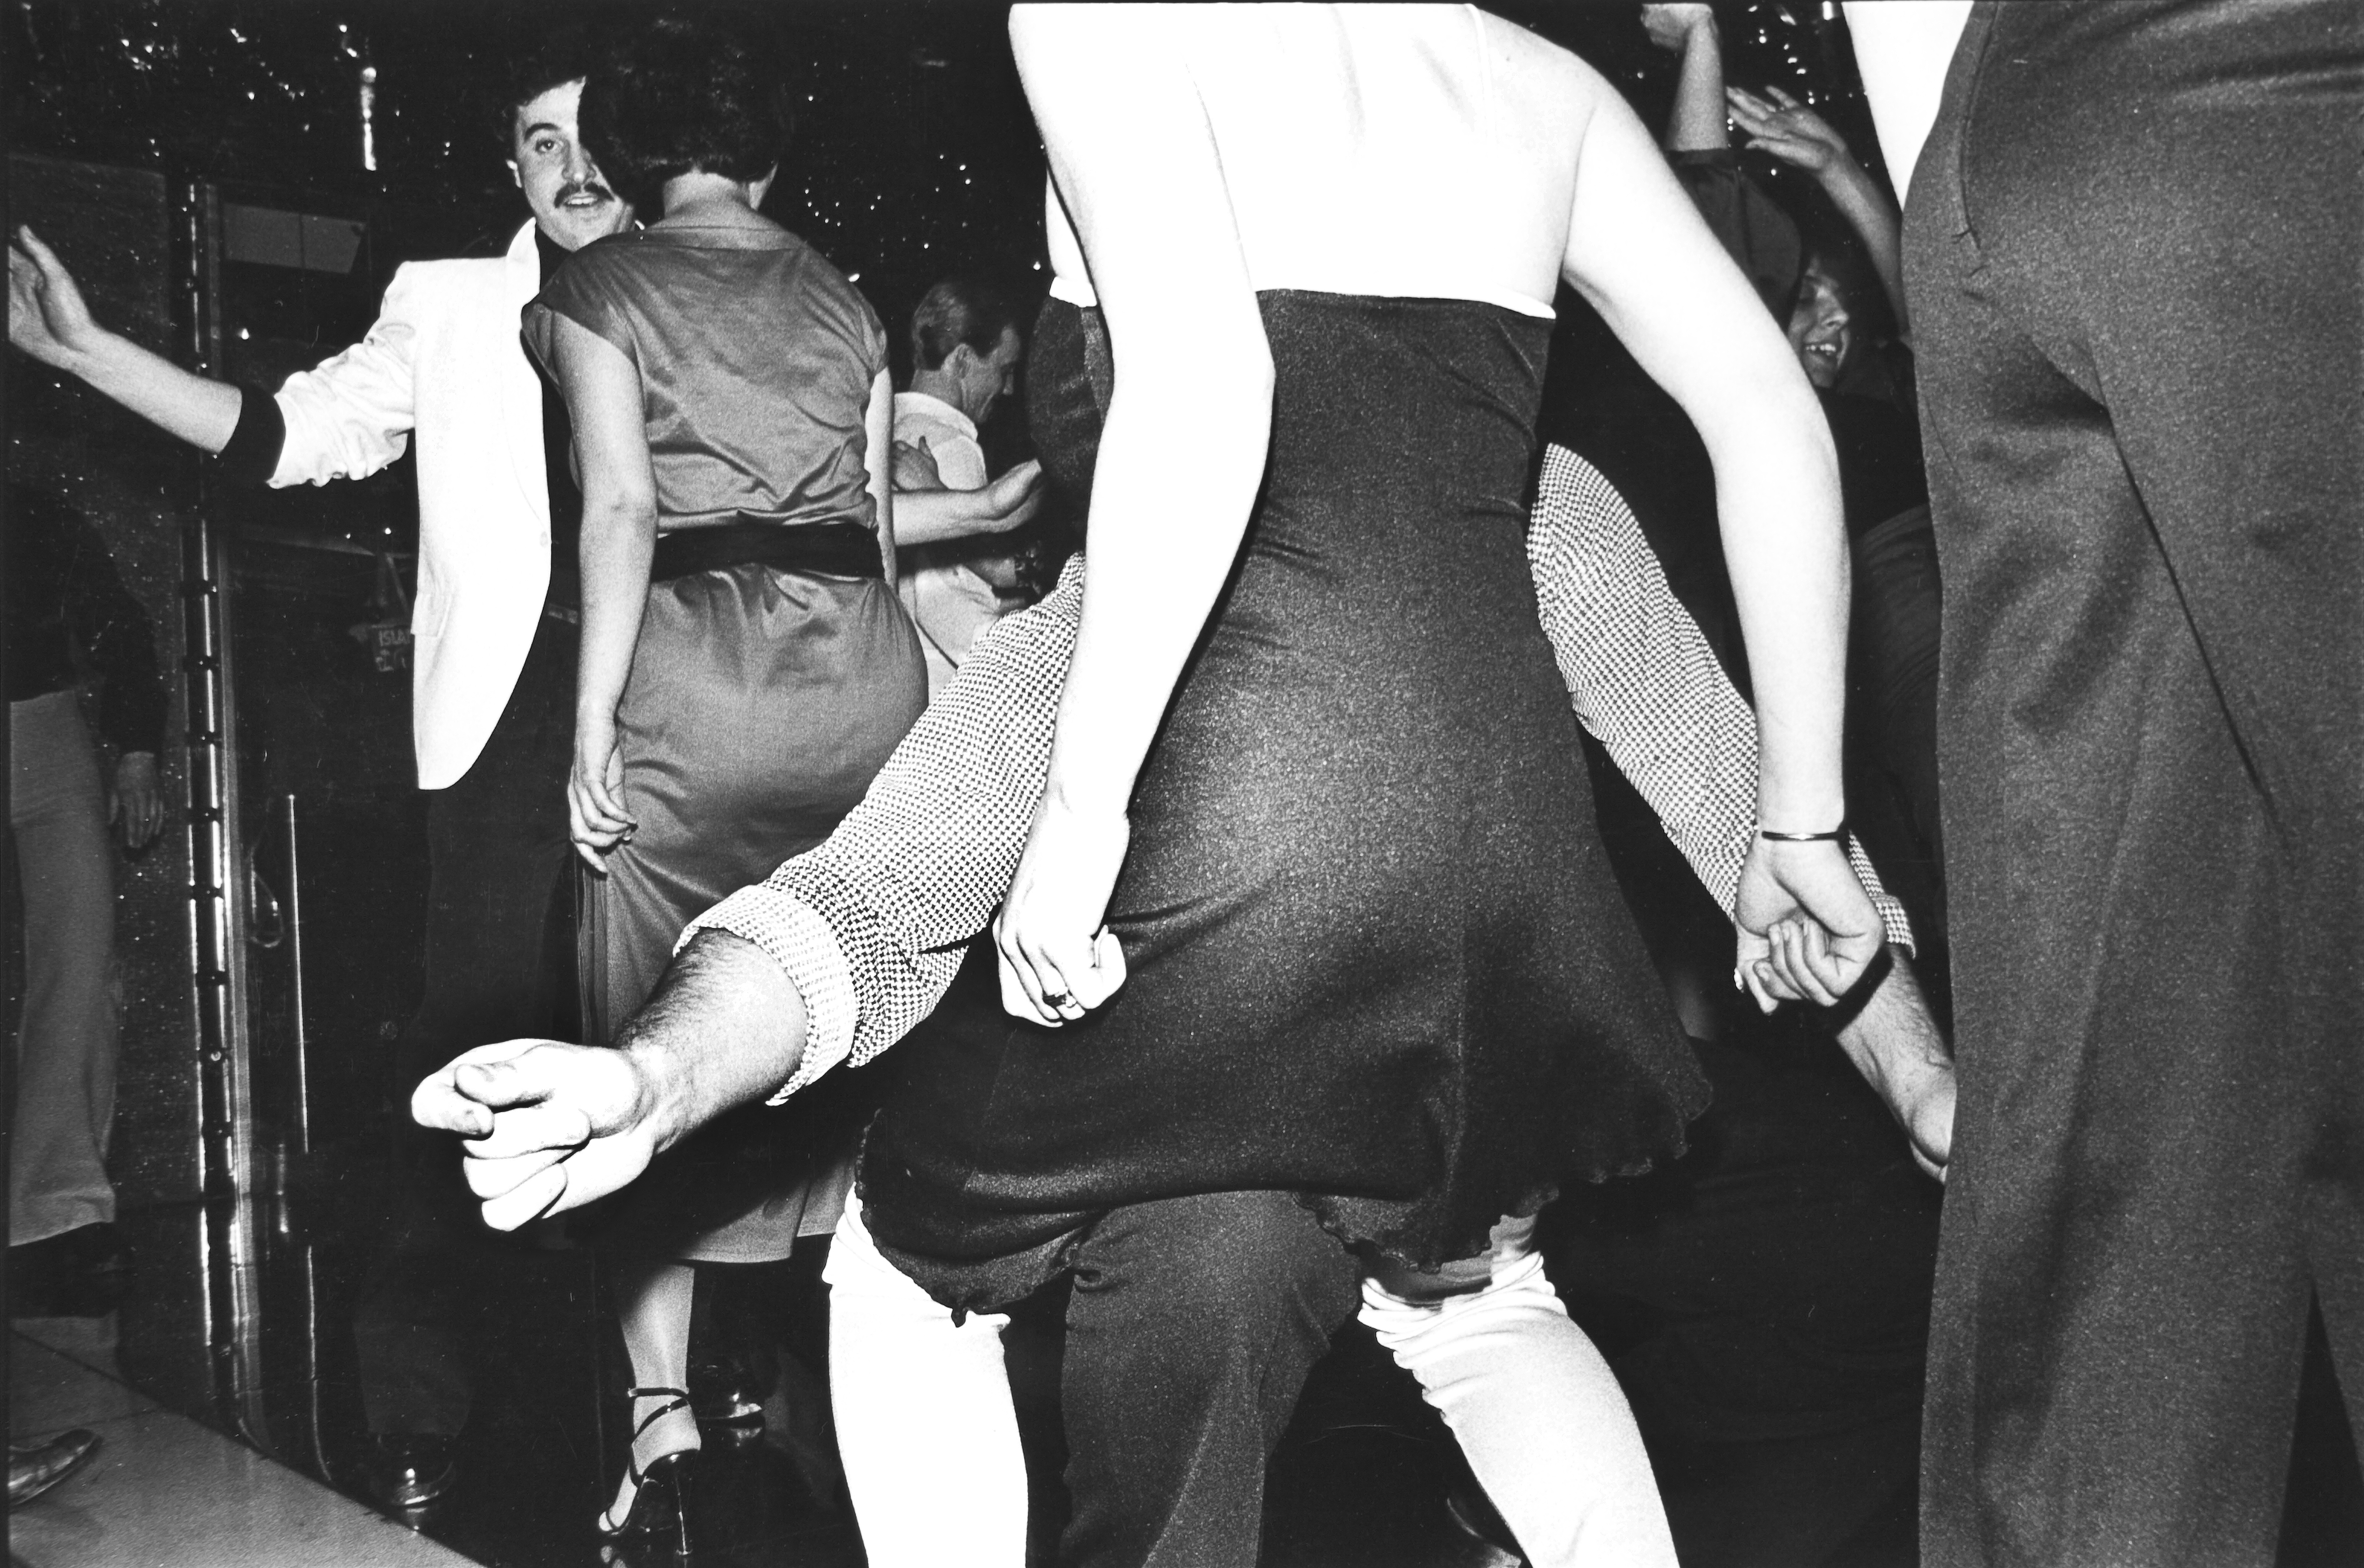 Tony_Ward_photography_early_work_Night_Fever_portfolio_1970's_erotic_dirty_dancing_couples_grinding